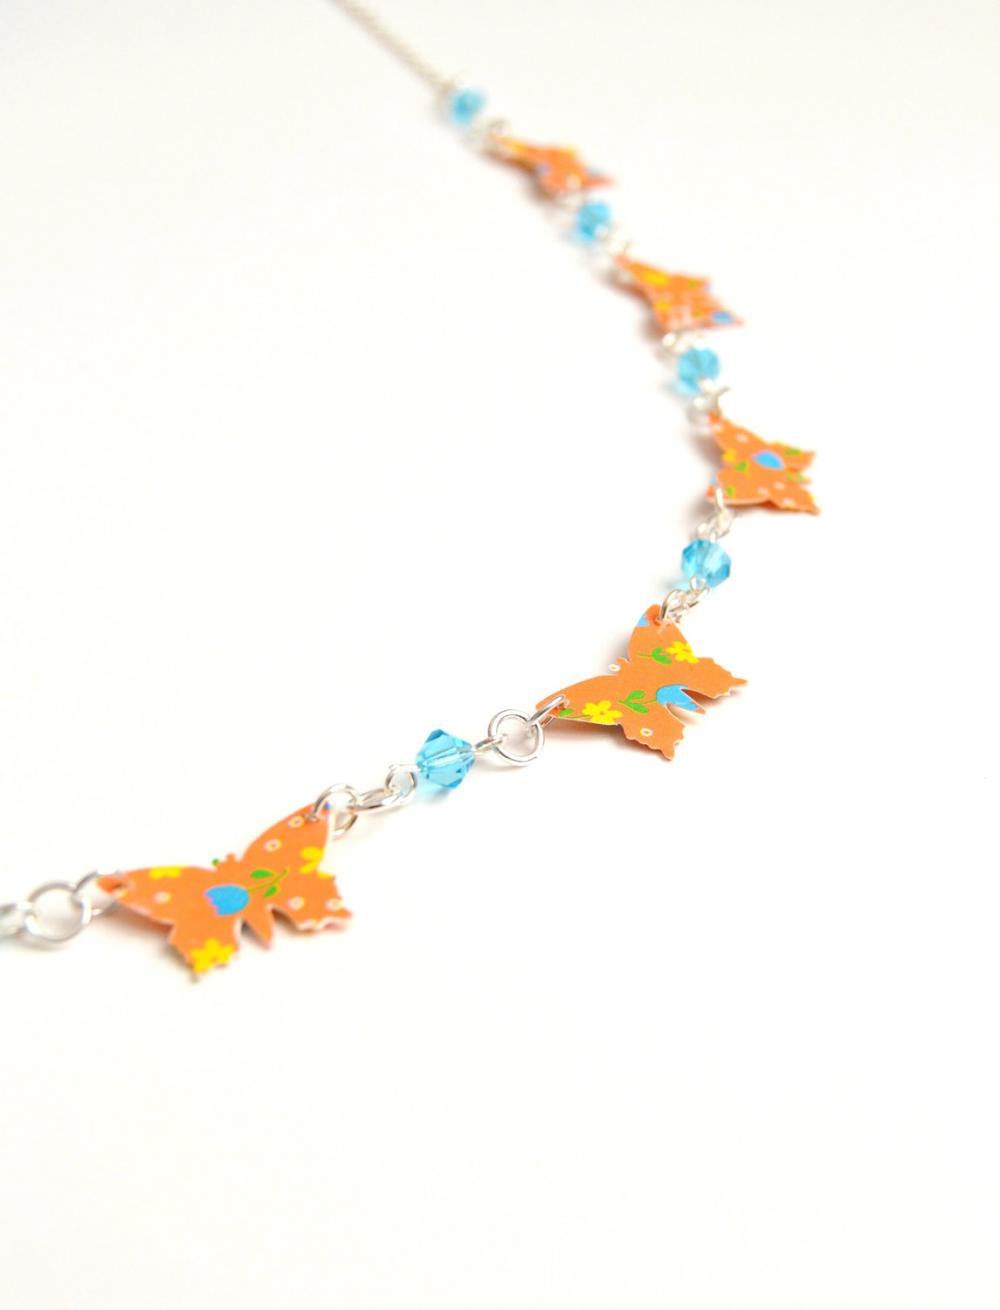 Necklace with orange paper butterflies and turquoise crystals